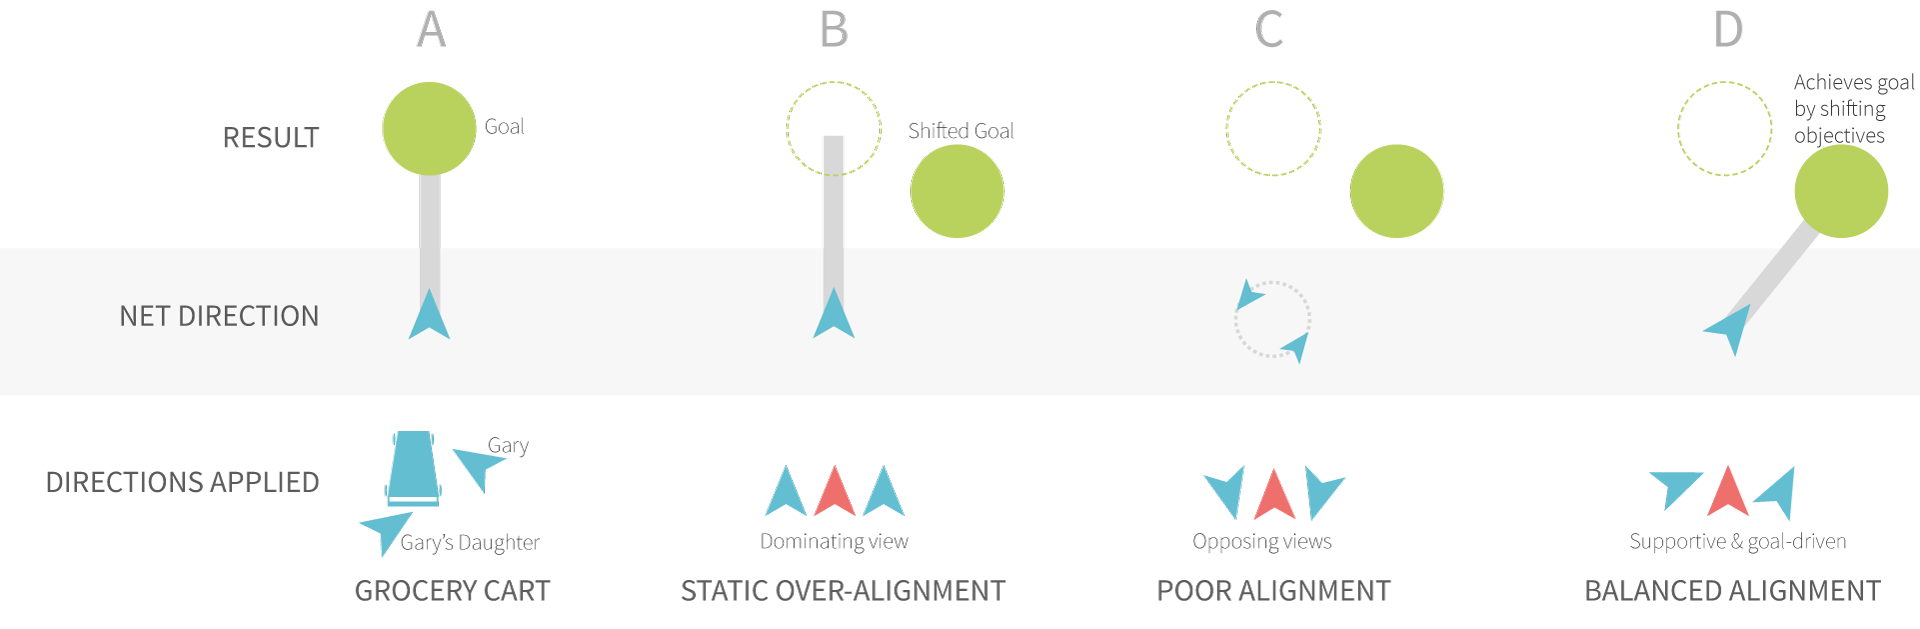 Figure 1. Highlighting the importance of aligning direction to ensure that goals are achieved.